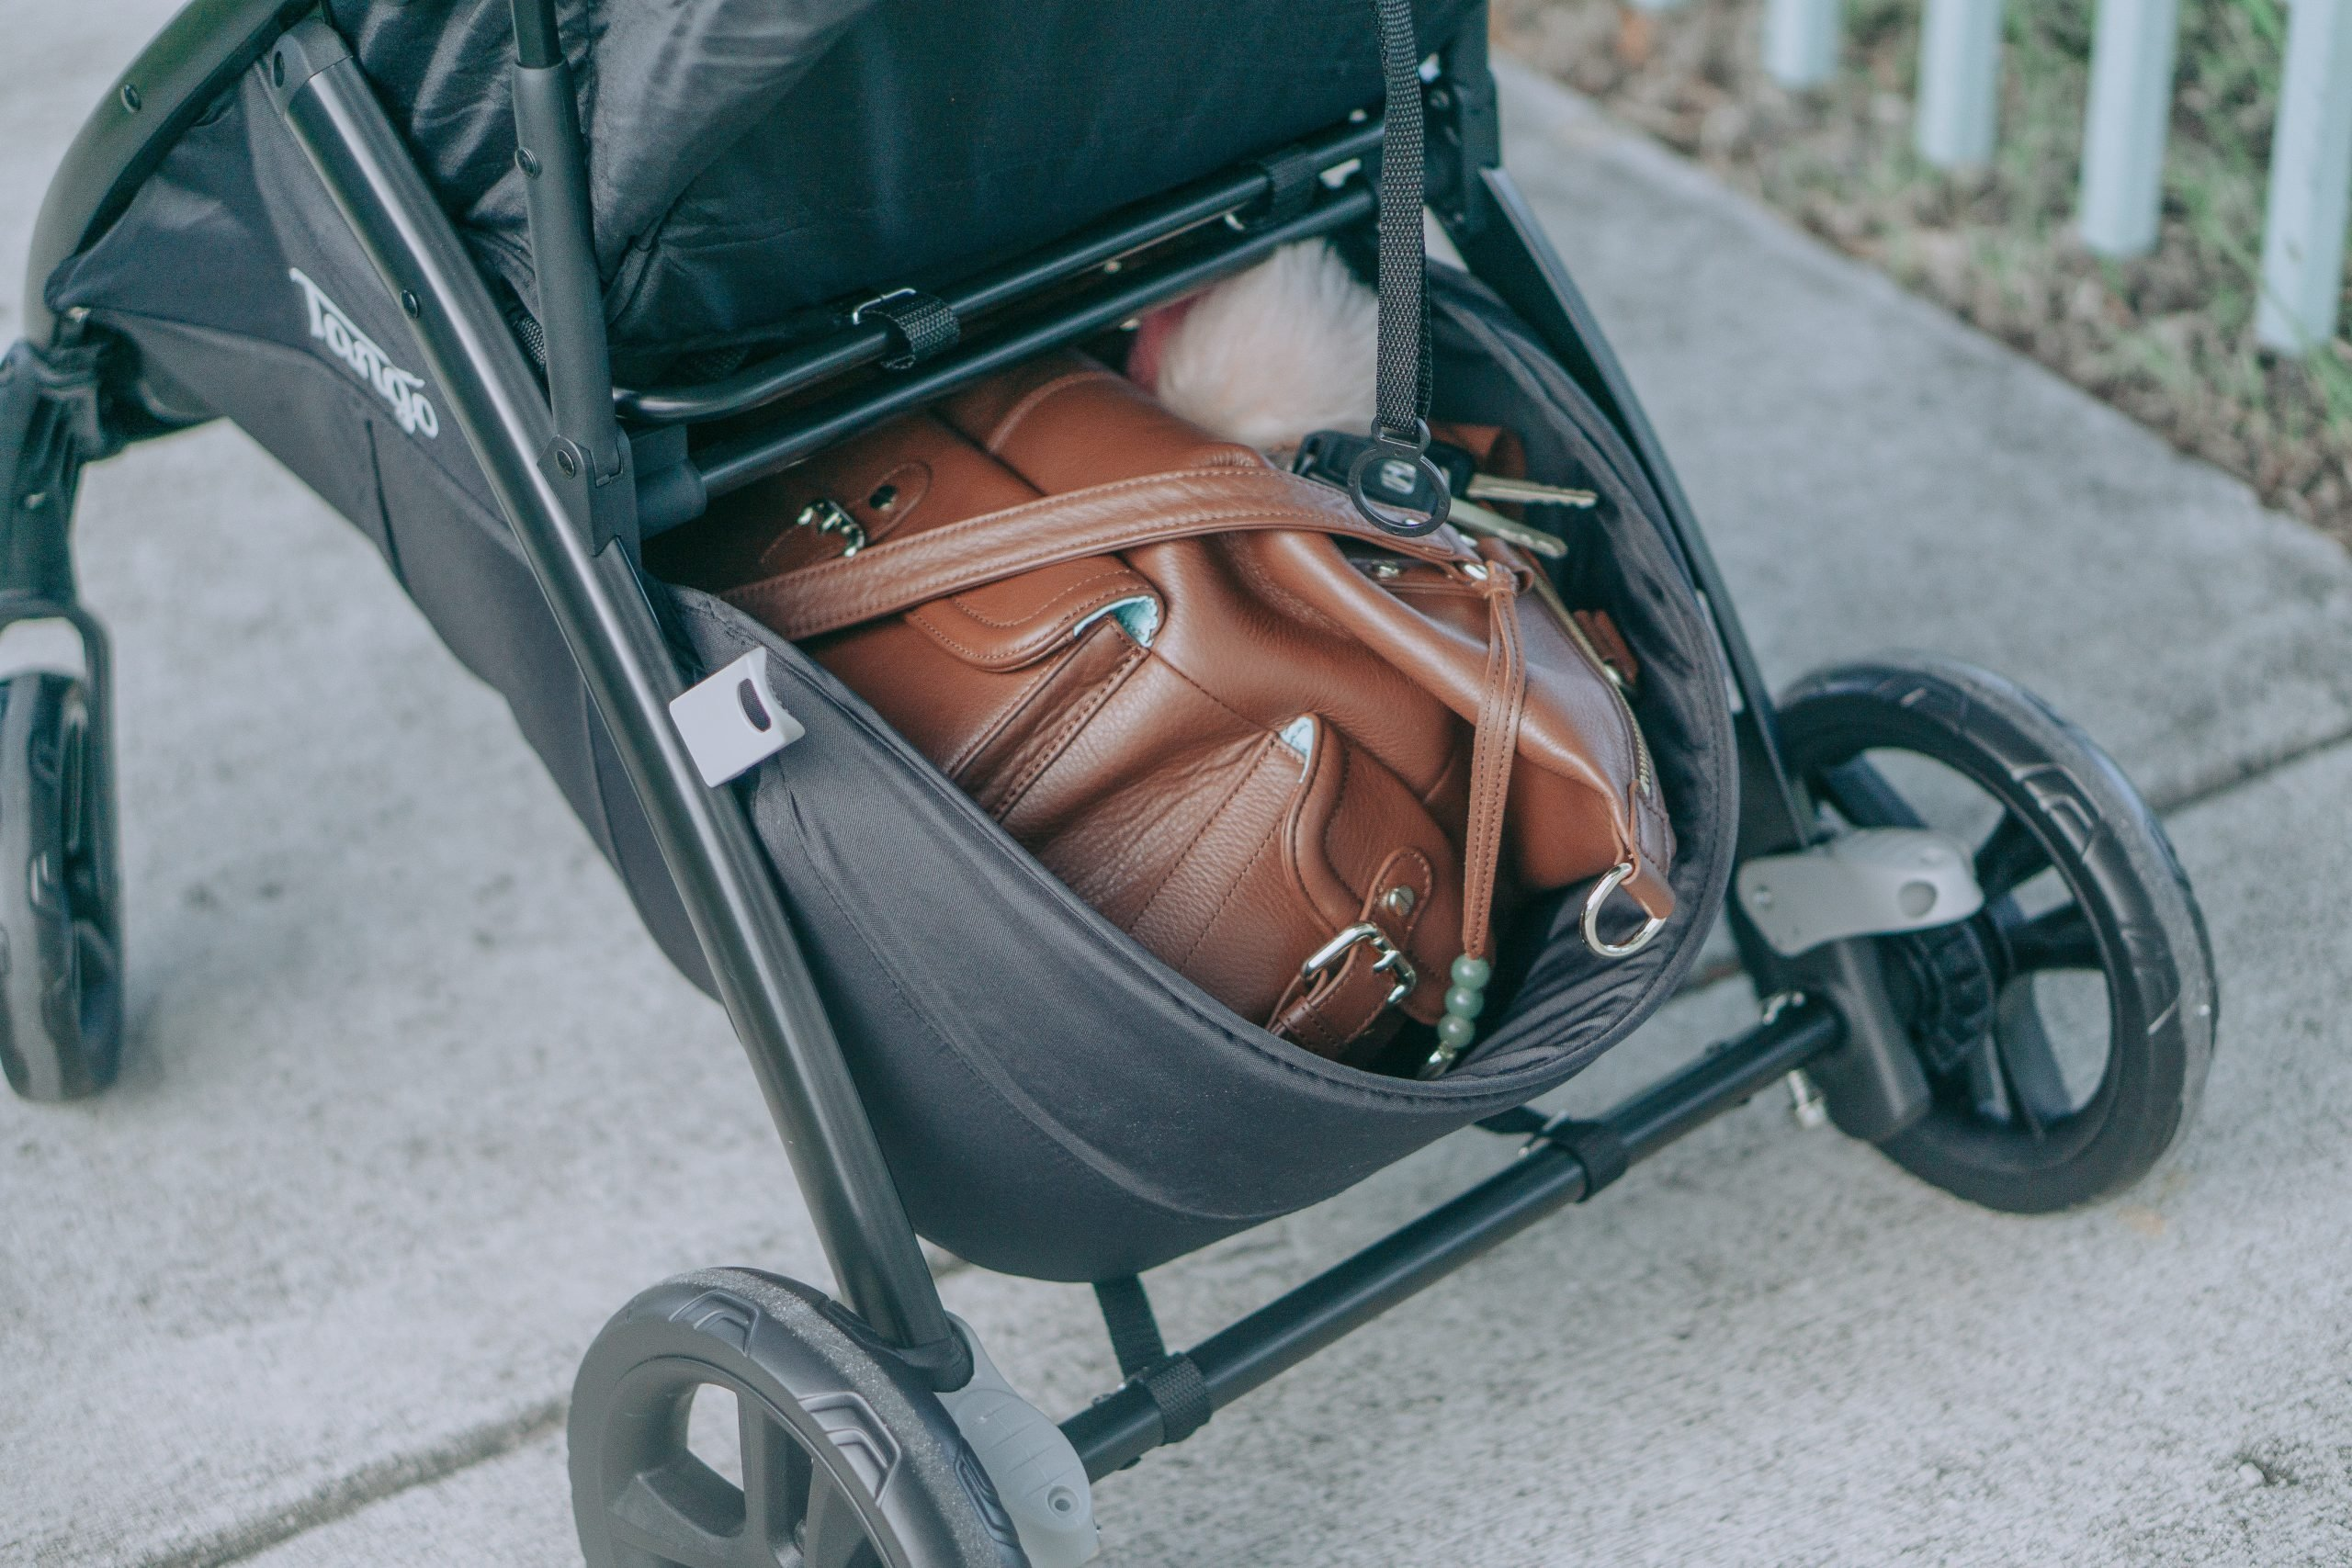 Best stroller you might consider buying for your kids